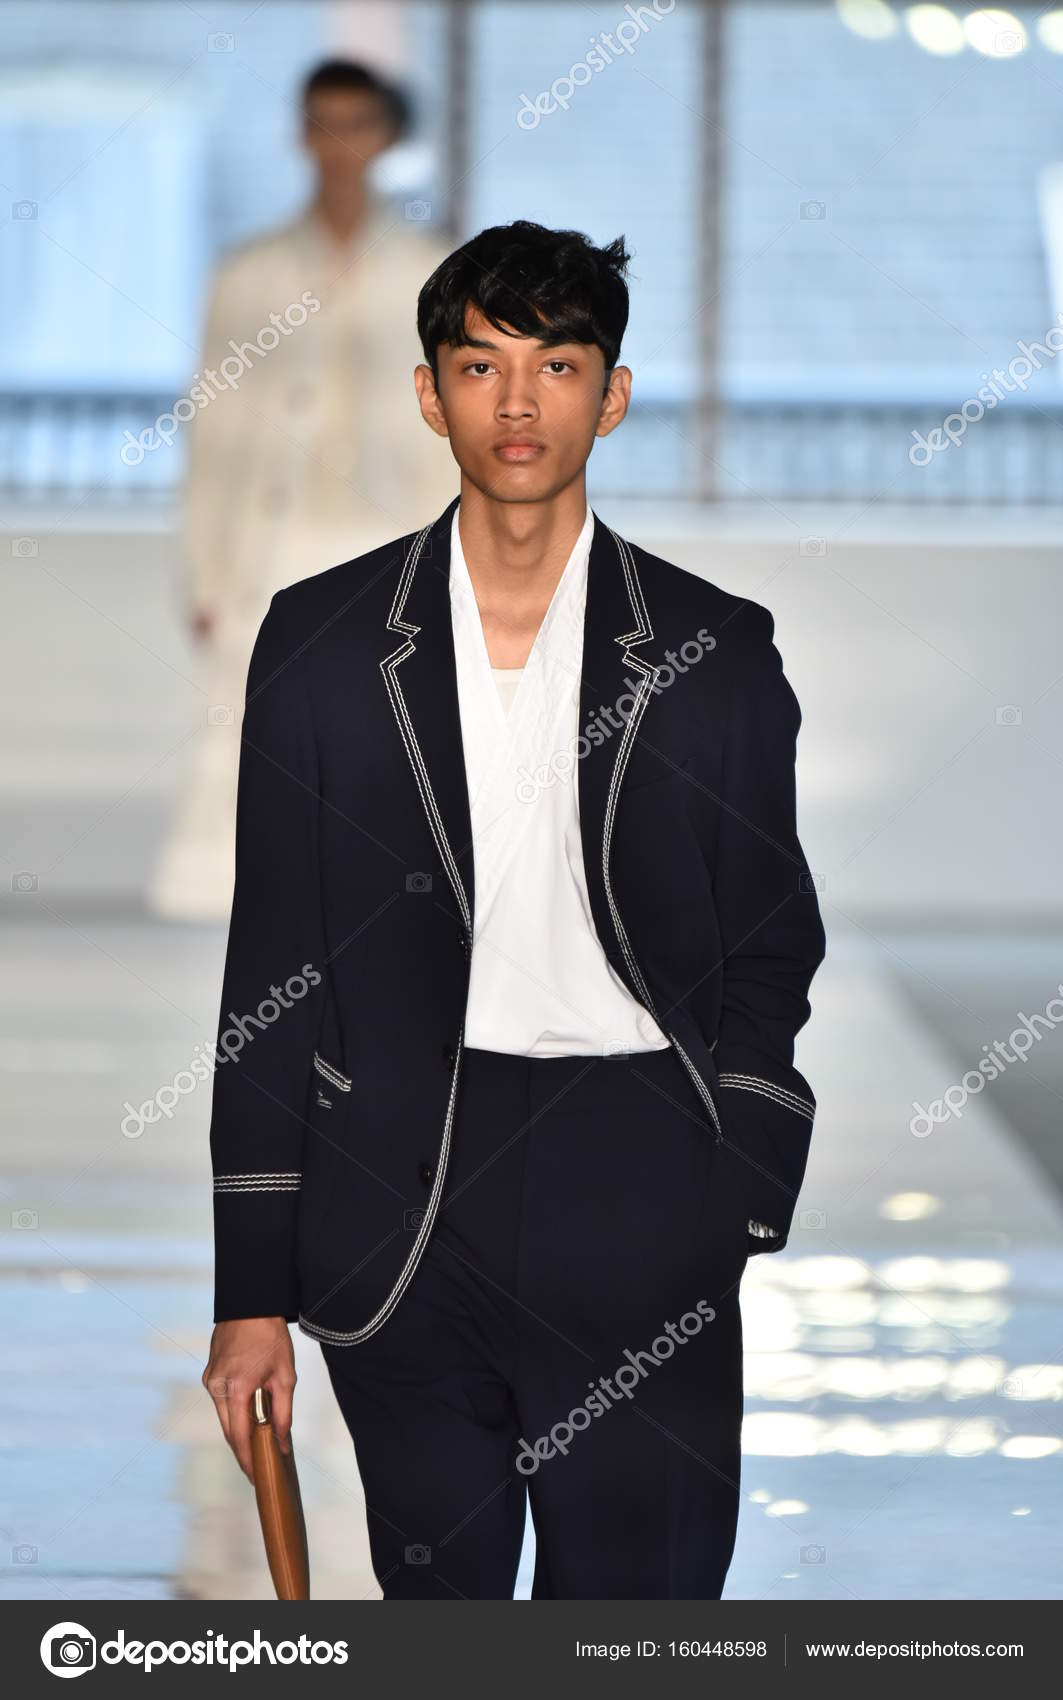 db1f8f3052496 Hugo Boss Menswear Fashion Show